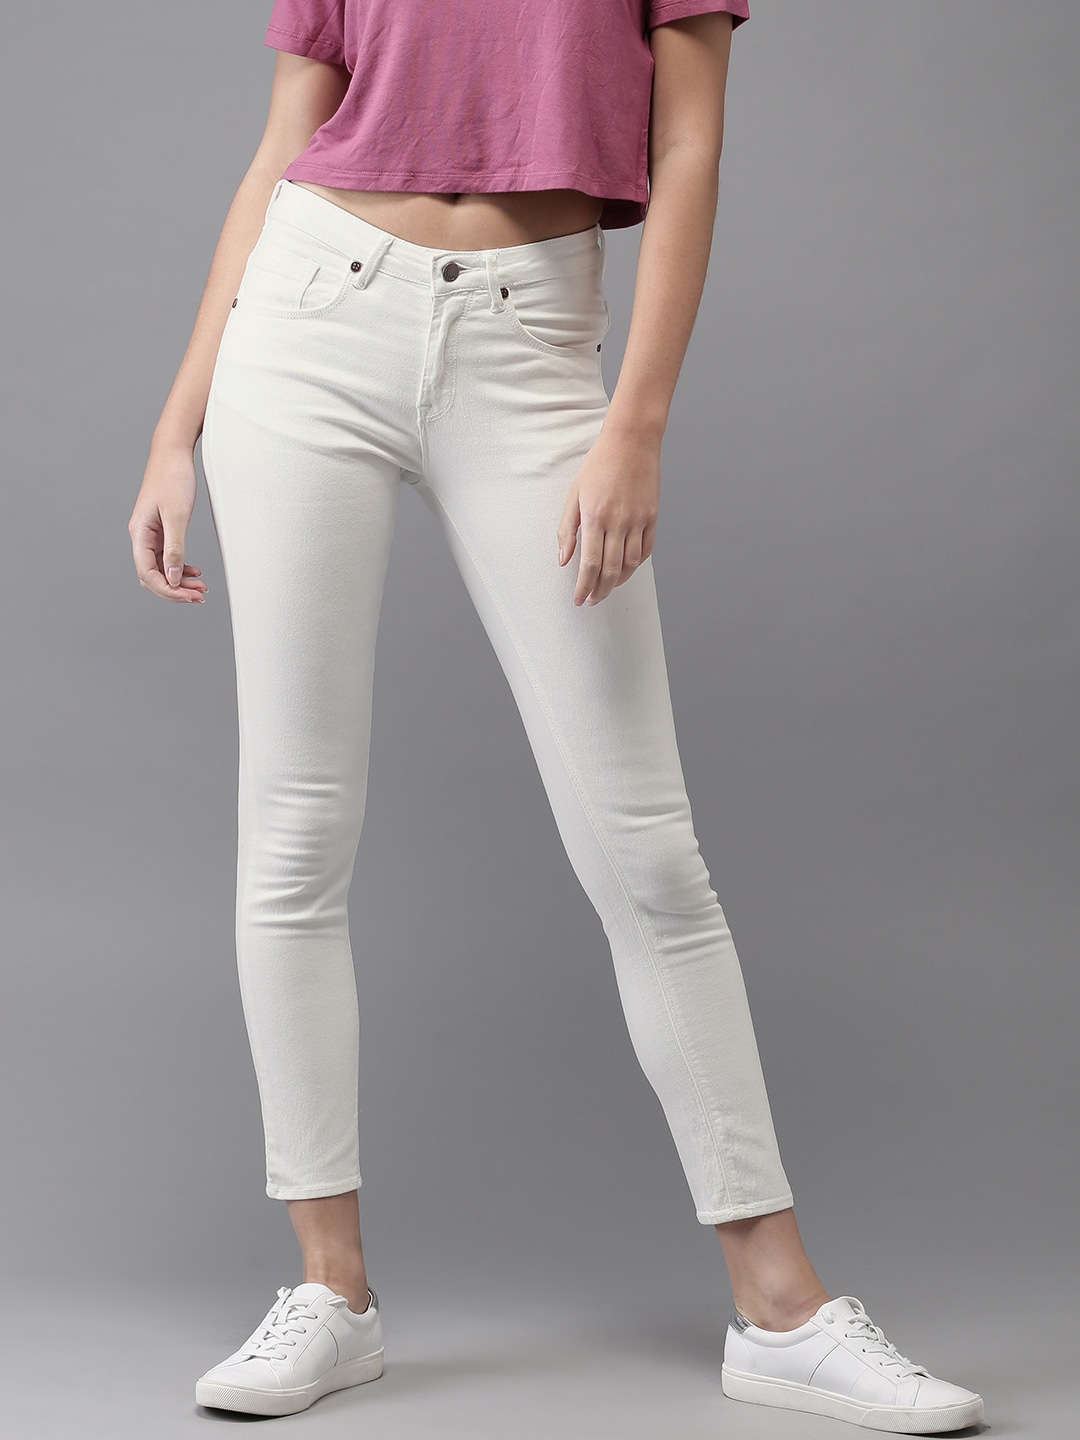 HERE&NOW White Skinny Fit Women Jeans